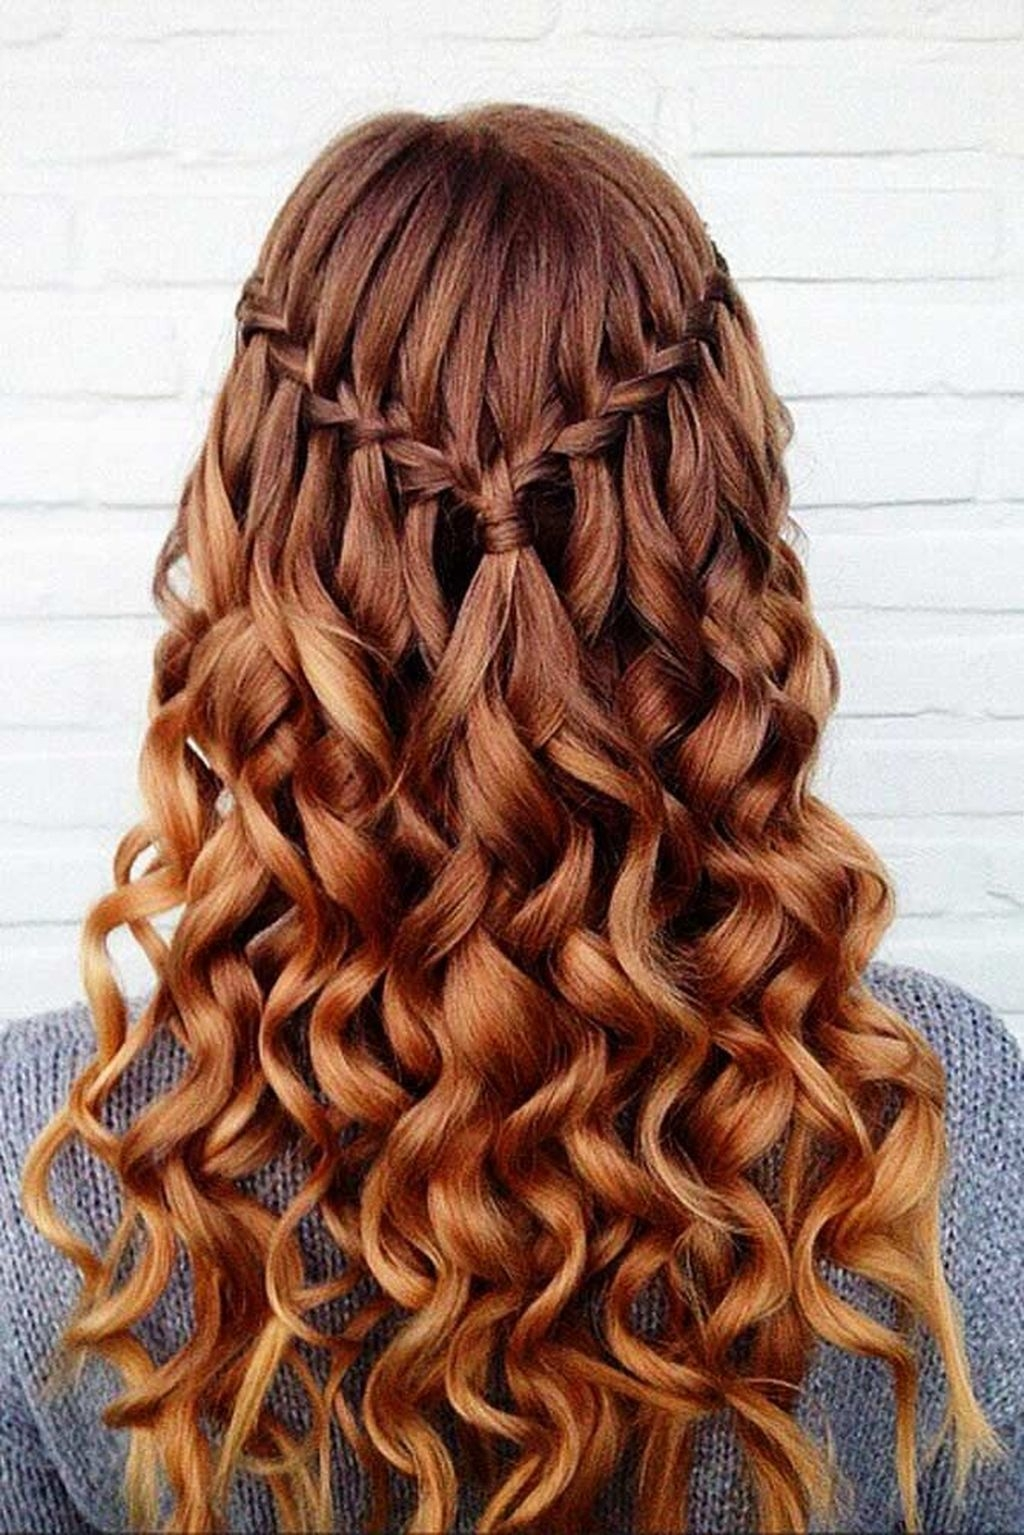 44 Cute Christmas Braided Hairstyles Ideas Addicfashion